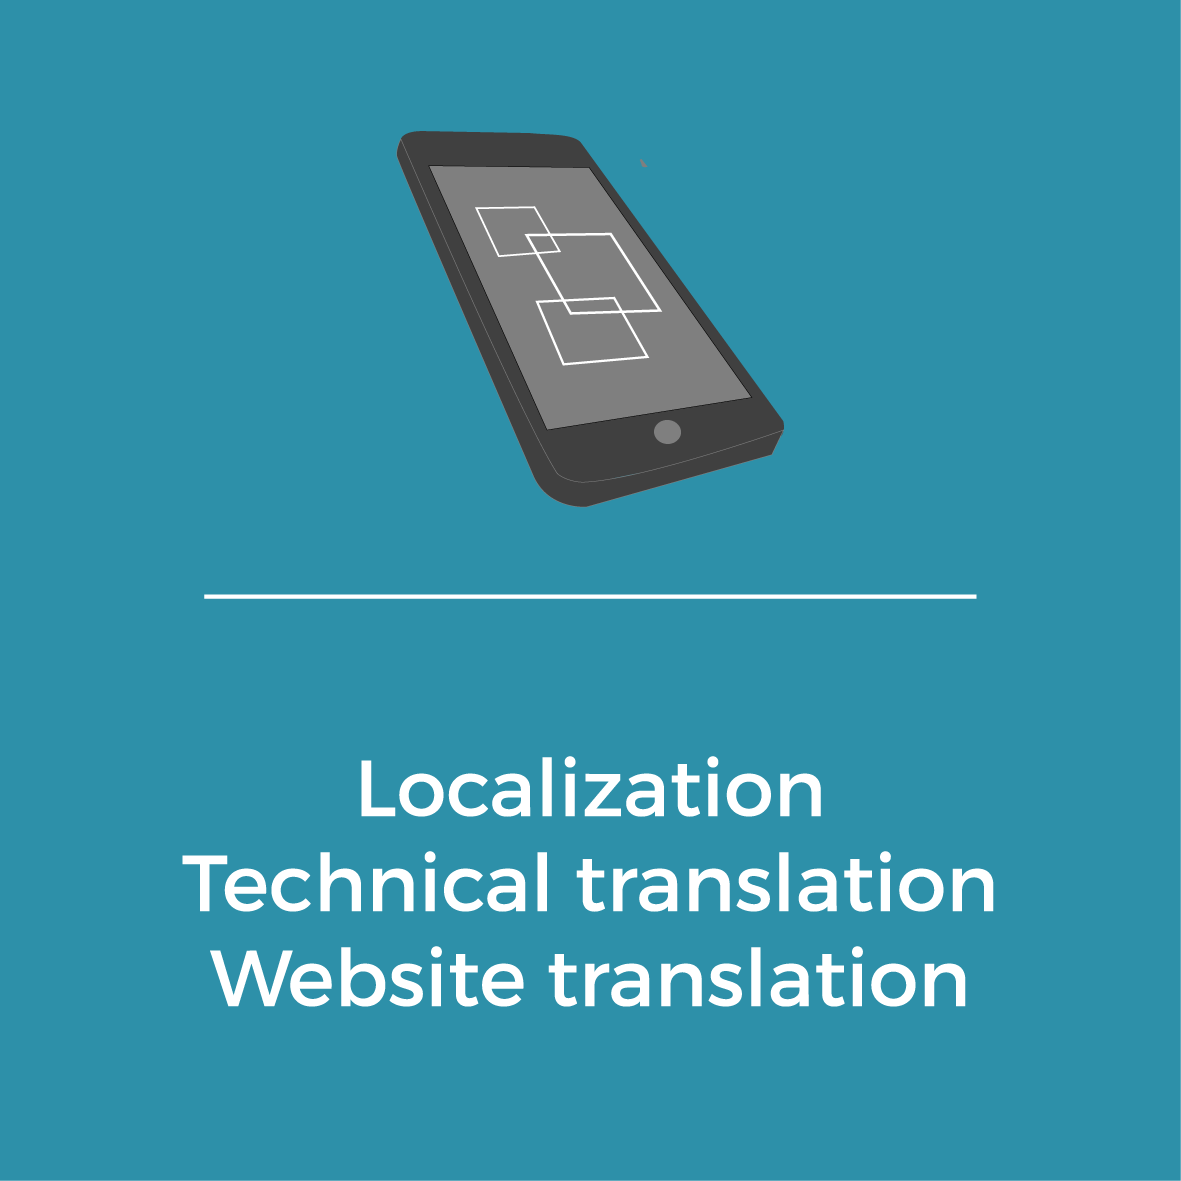 Services - Localization - Technical translation - Website translation